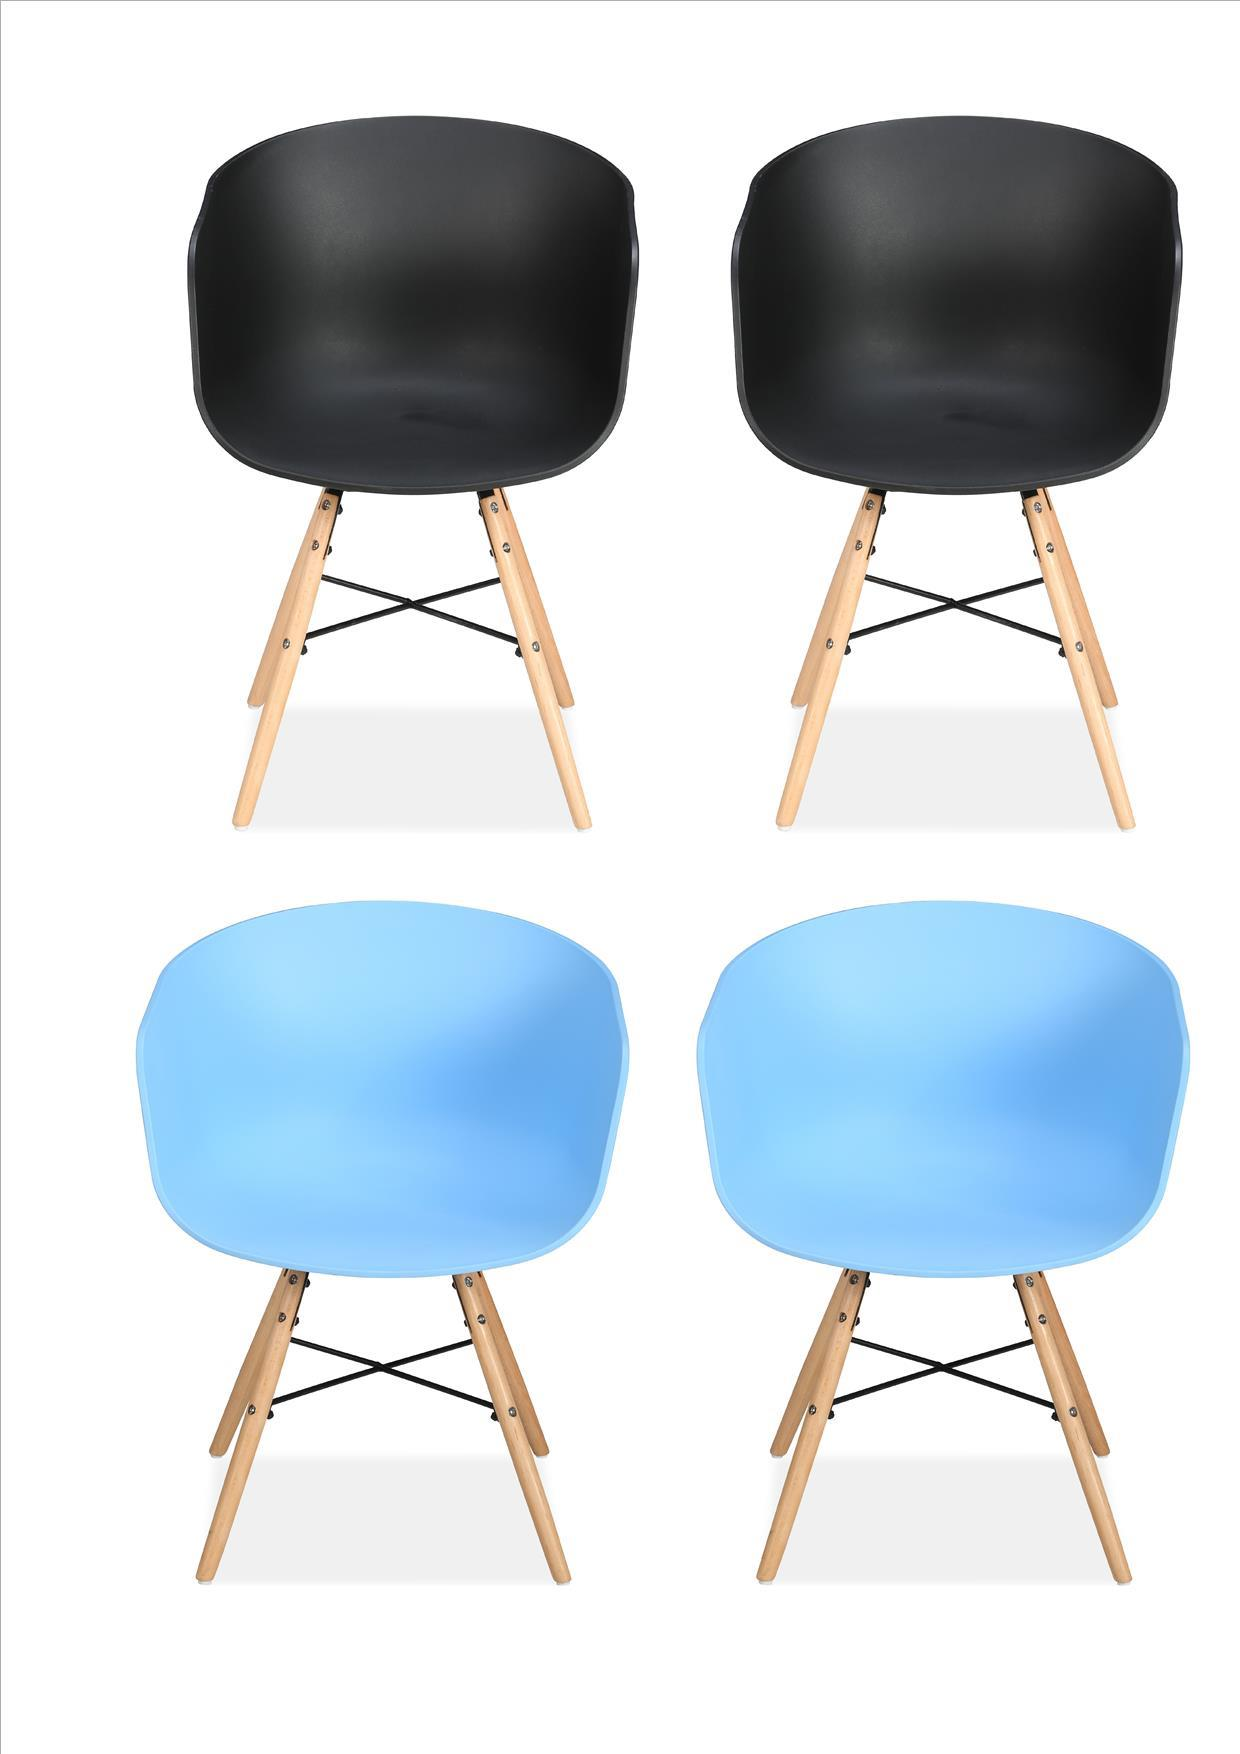 4 Birlea Kipling 2 Blue 2 Black Tub Eiffel Kitchen Dining Chair Bucket Plastic